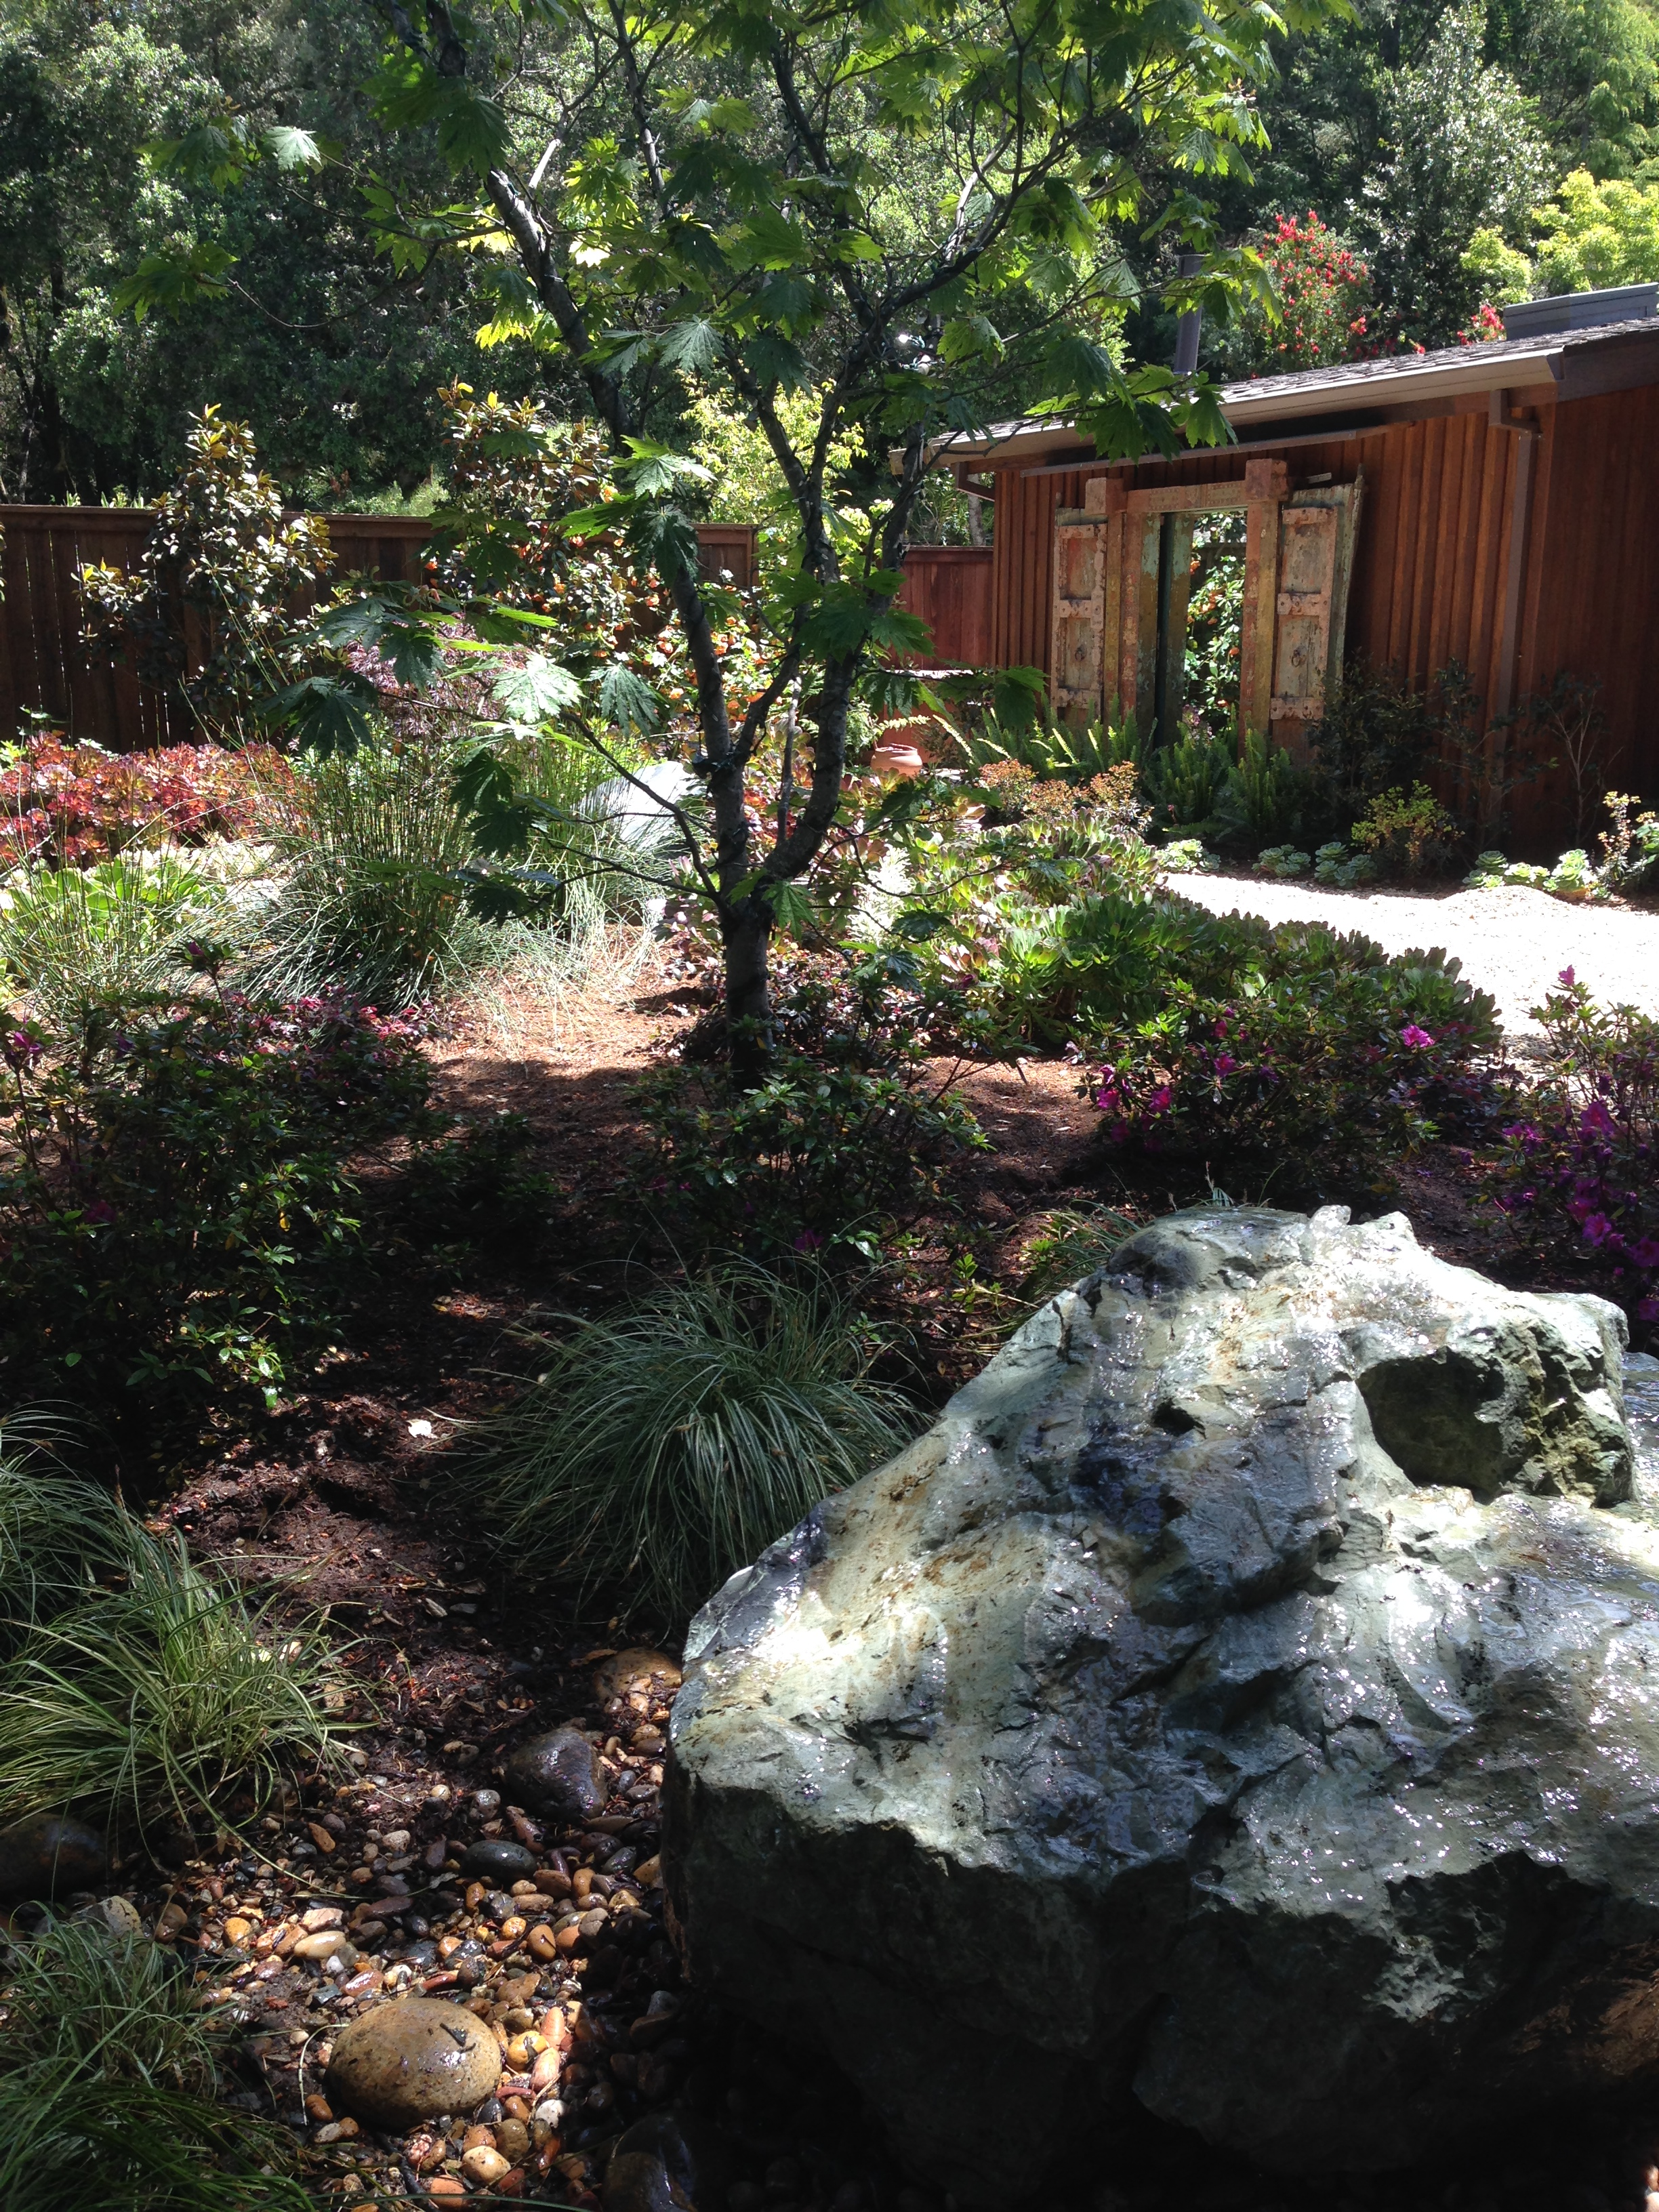 at home nursing healing neumann generations for water the garden courtyard fountain features st design john sitting gardens by img in